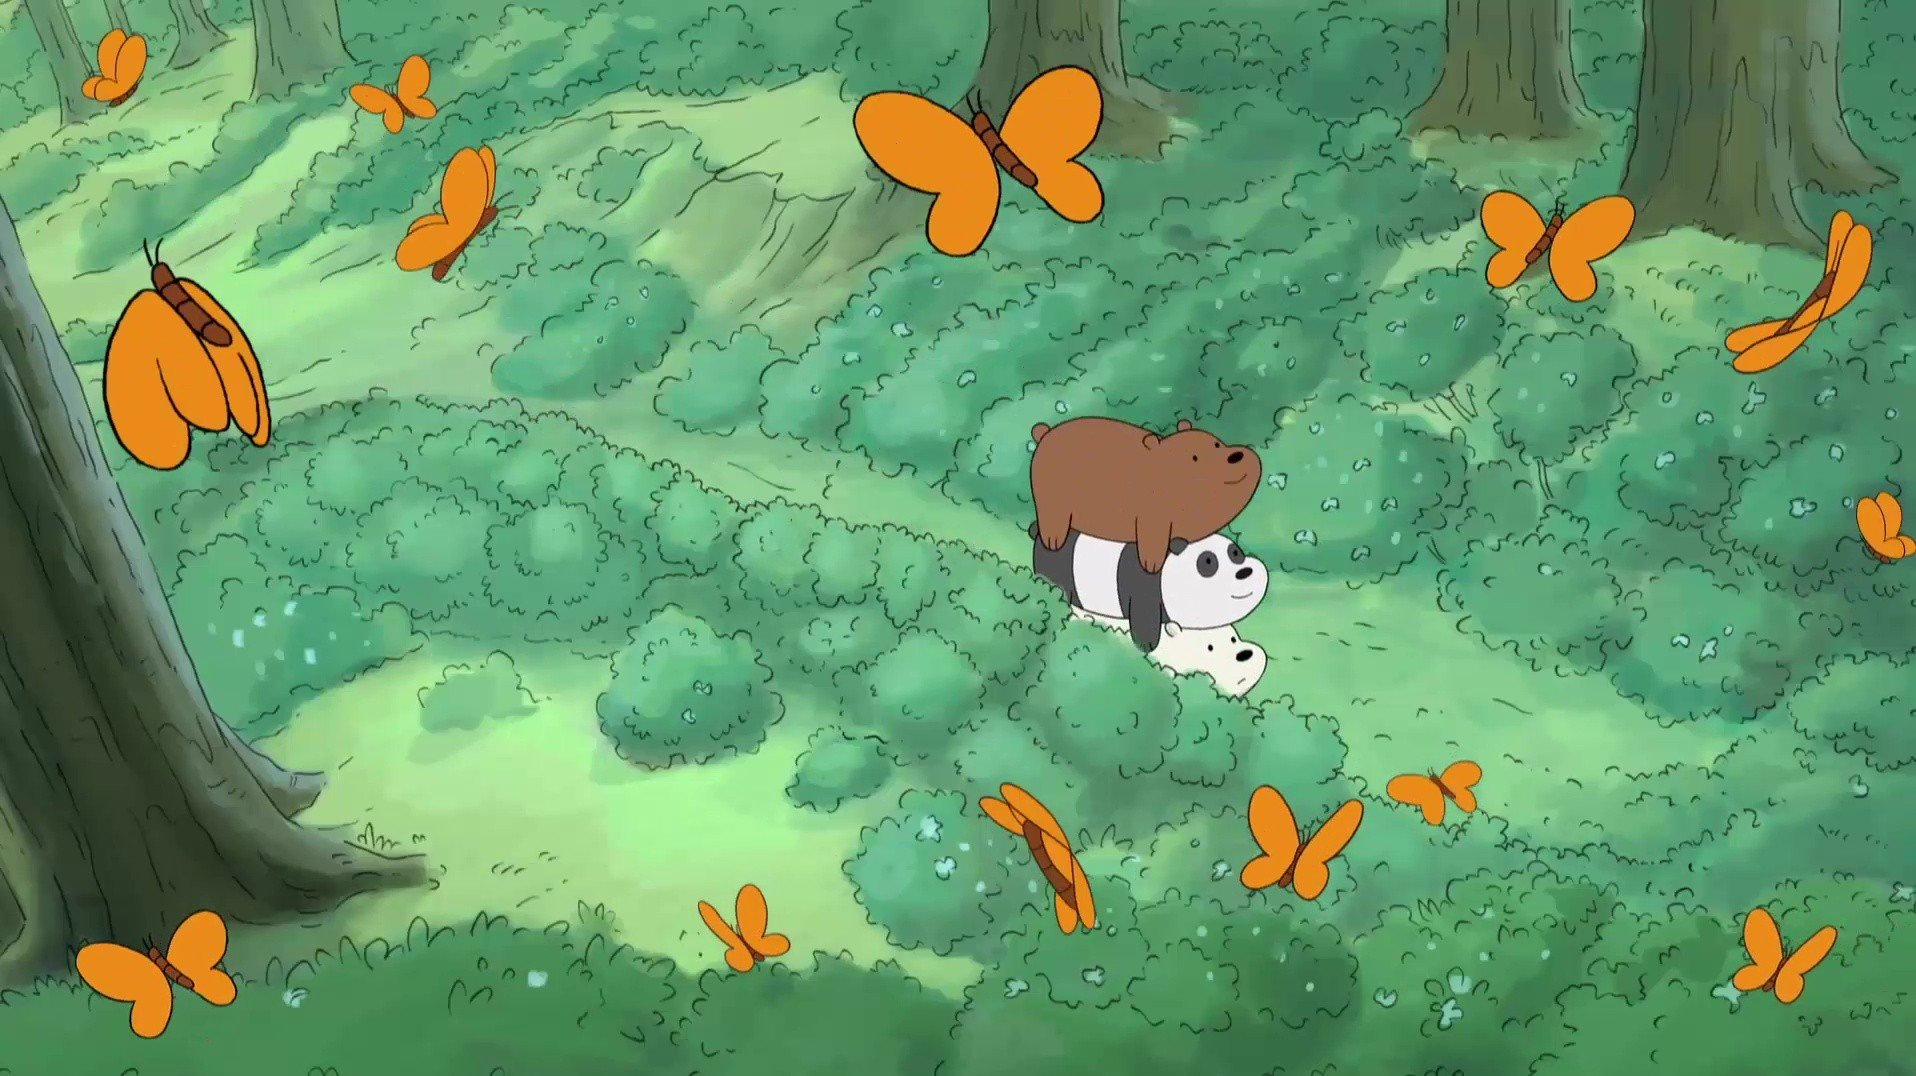 We Bare Bears Backgrounds Posted By Ryan Sellers